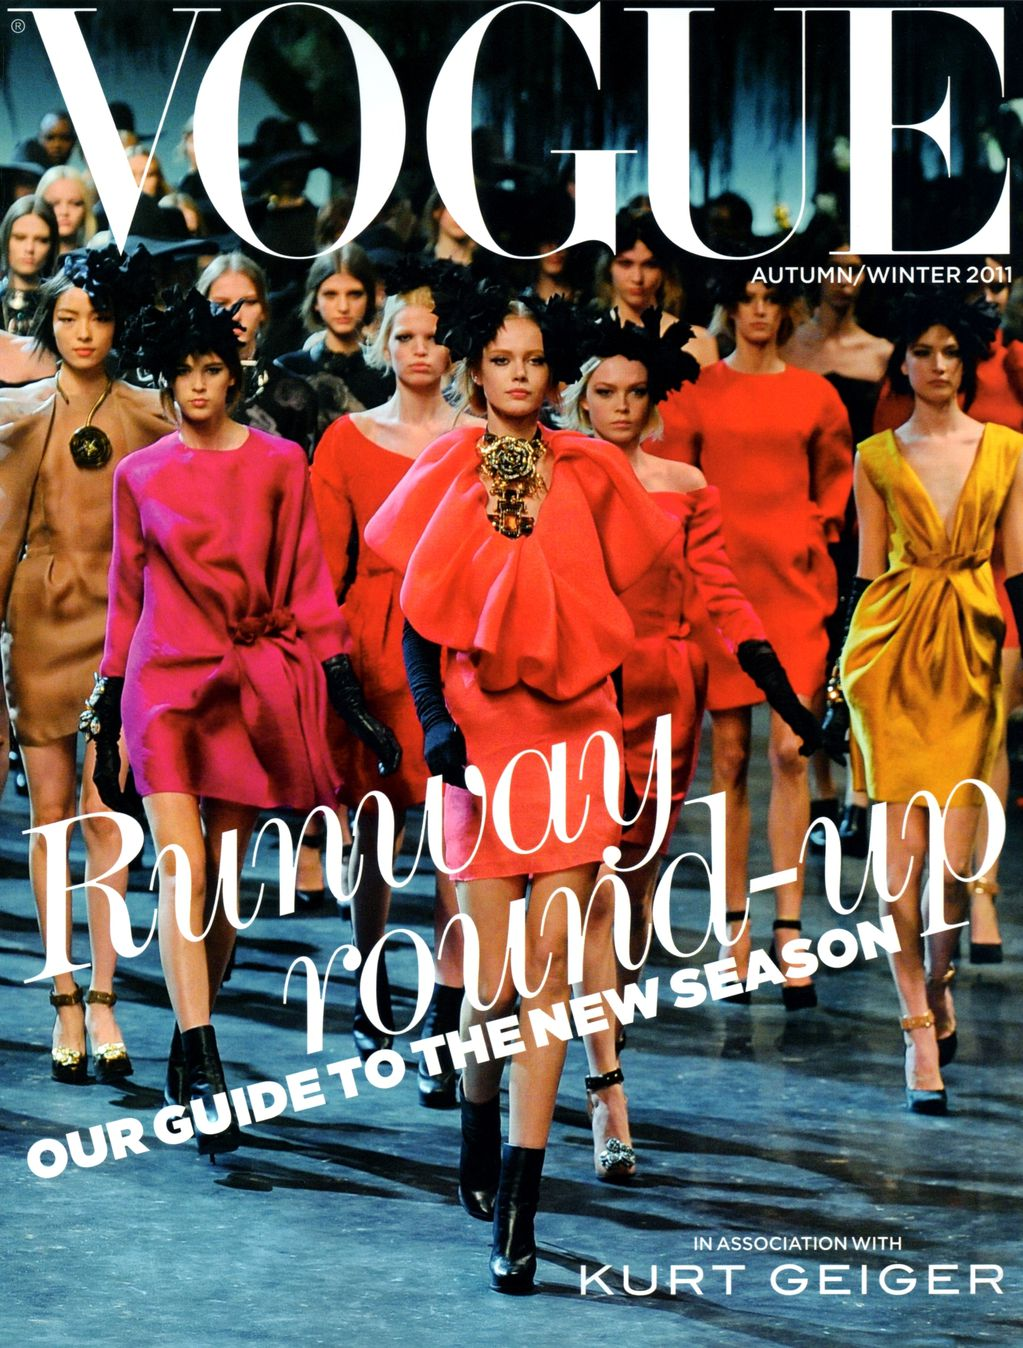 Lanvin on a cover of Vogue UK Collections Special 2011 via www.fashionedbylove.co.uk